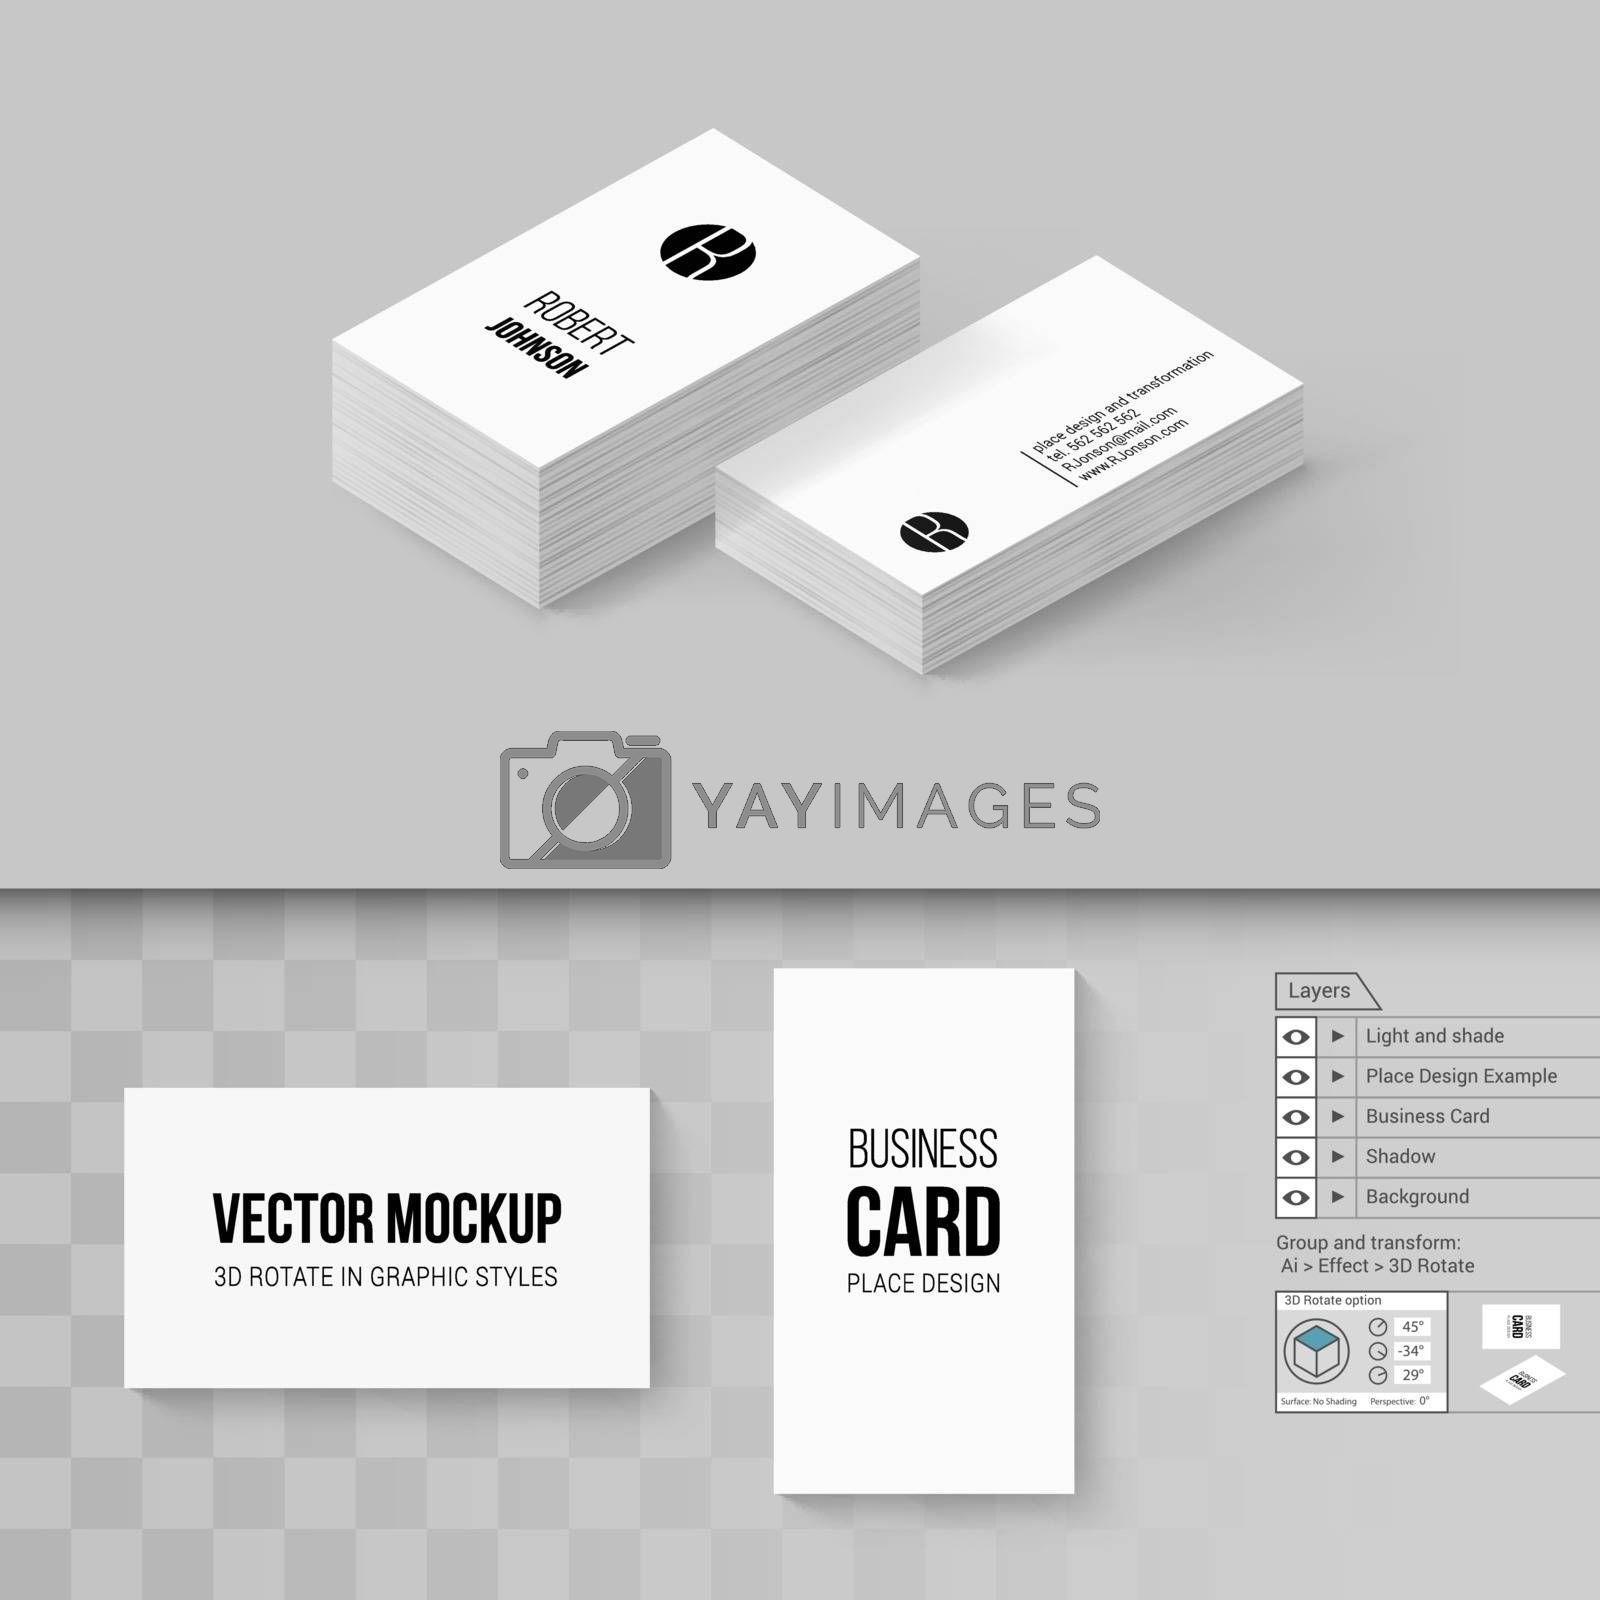 Business Cards Template. Branding Mock Up with 3D Rotate Options